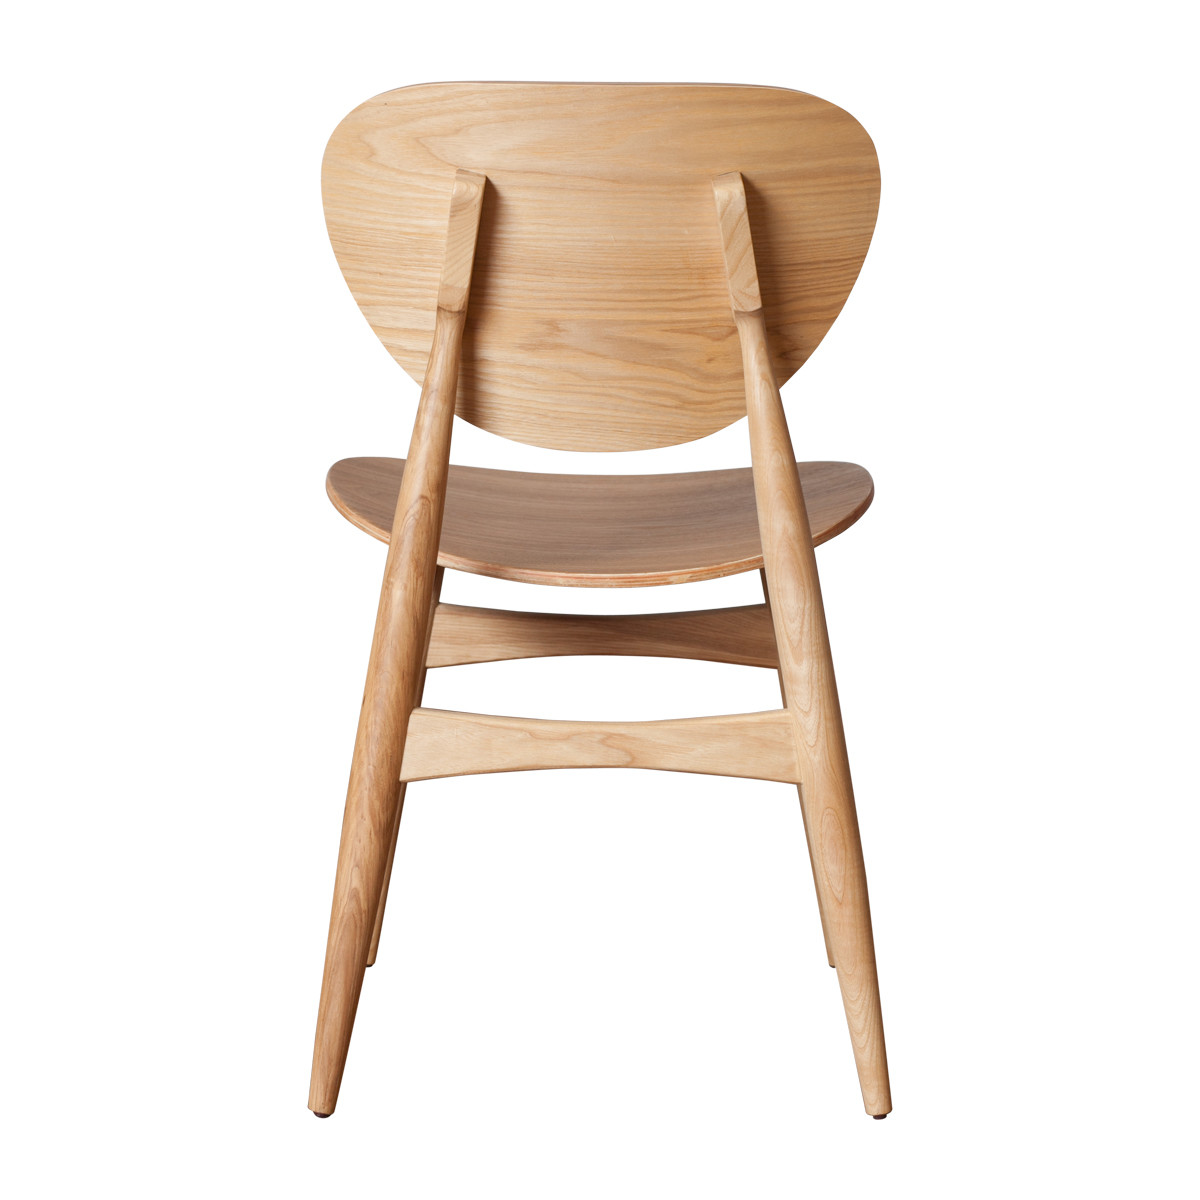 Latest Dining Chairs: NEW Jakobe Oak Dining Chair - Oslo Home,Dining Chairs